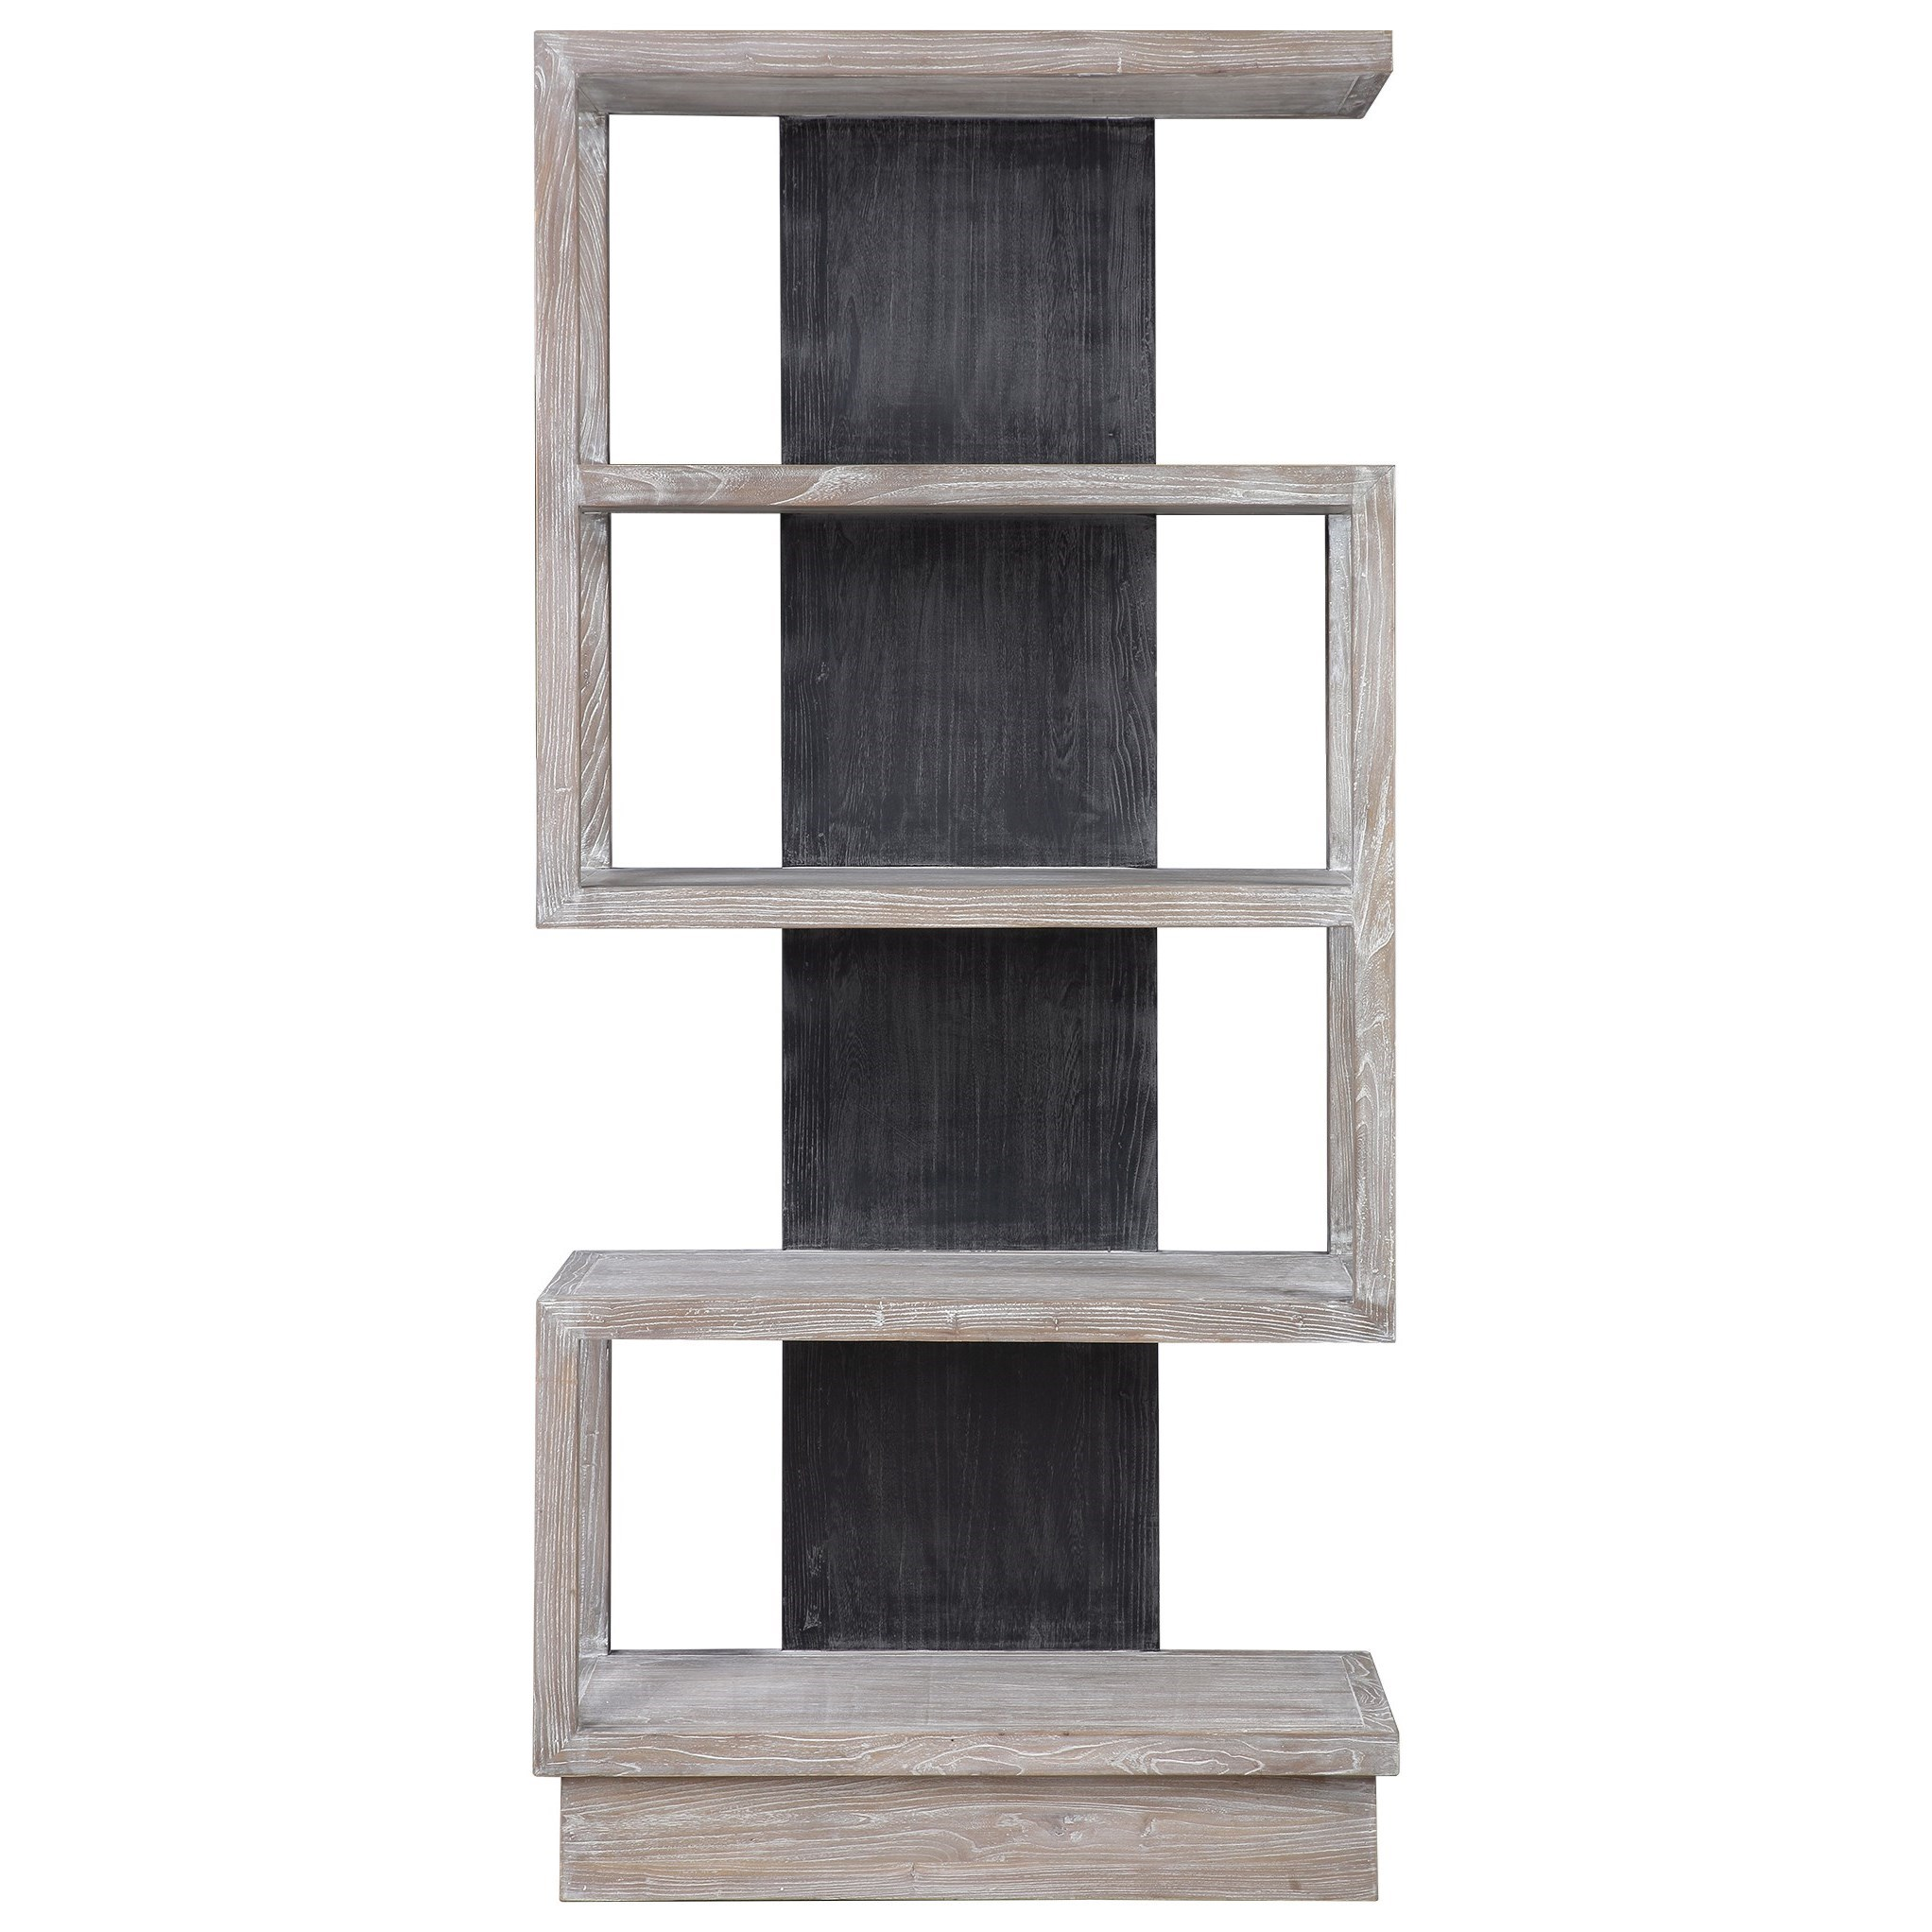 Accent Furniture - Bookcases Nicasia Modern Etagere by Uttermost at Mueller Furniture